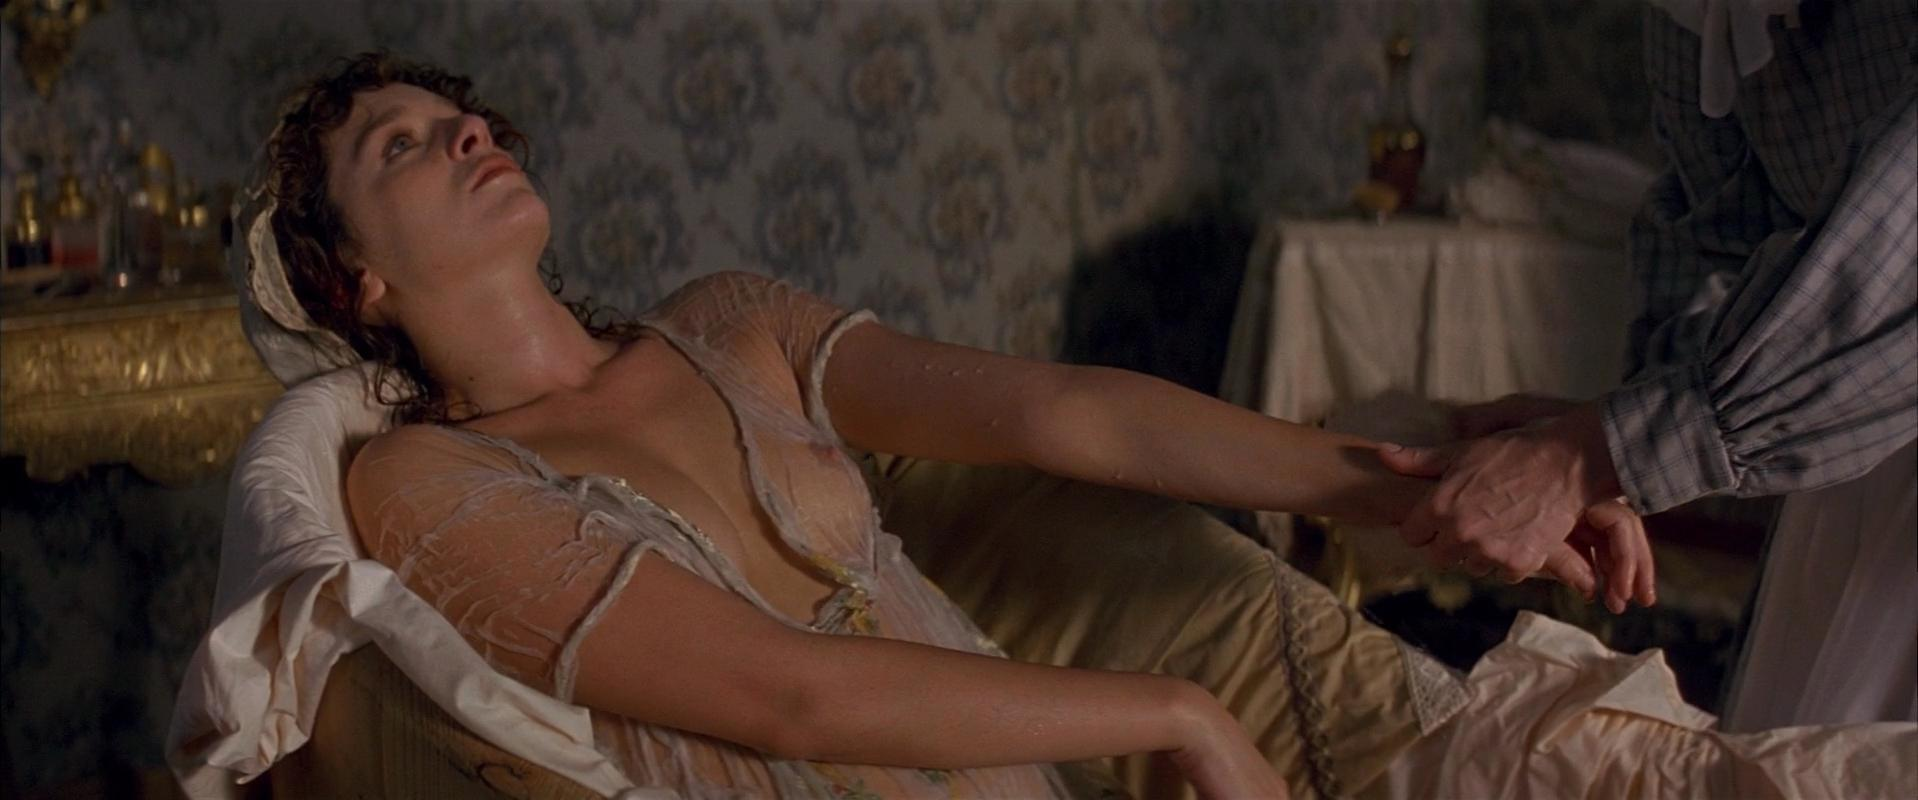 Valeria Golino nude, Geno Lechner nude - Immortal Beloved (1994)